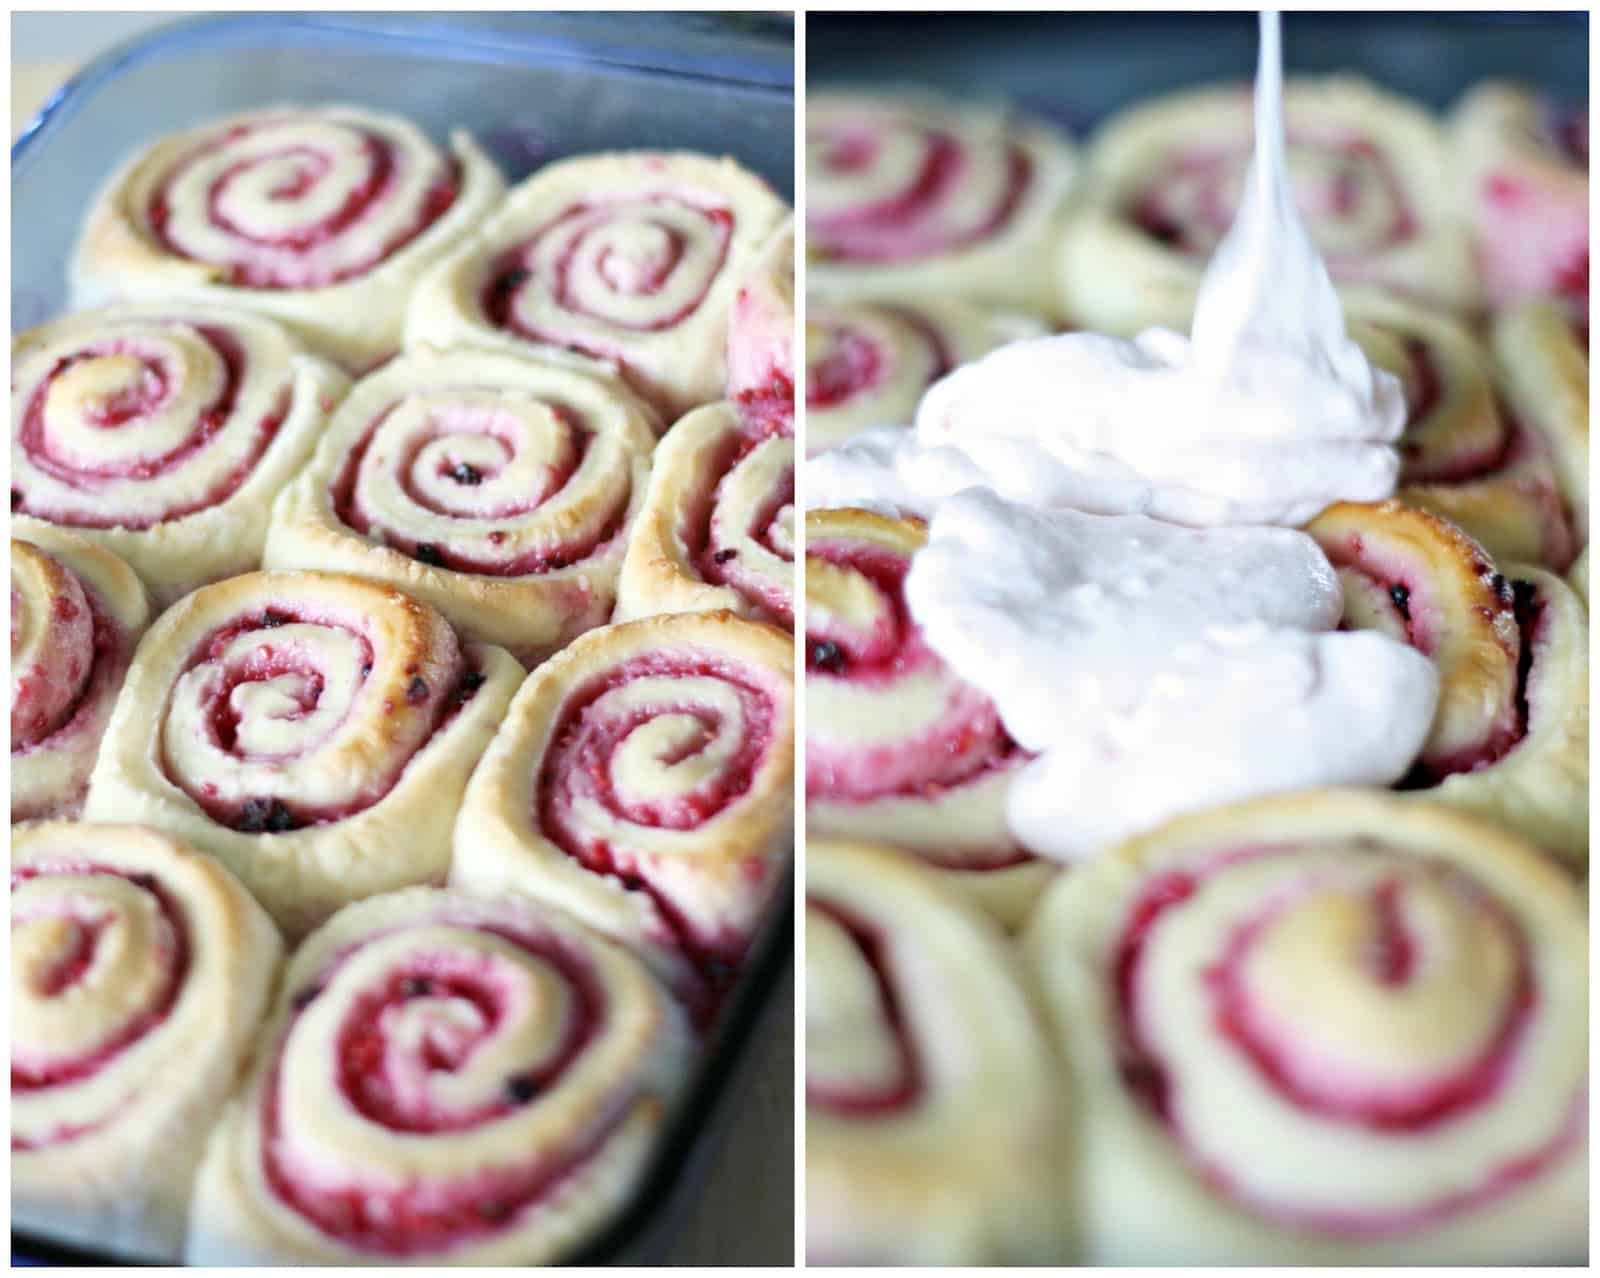 """This delicious sweet rolls recipe is a """"berry good"""" alternative to the traditional cinnamon roll. Add mixed fruit jam to make it extra sweet and yummy!"""